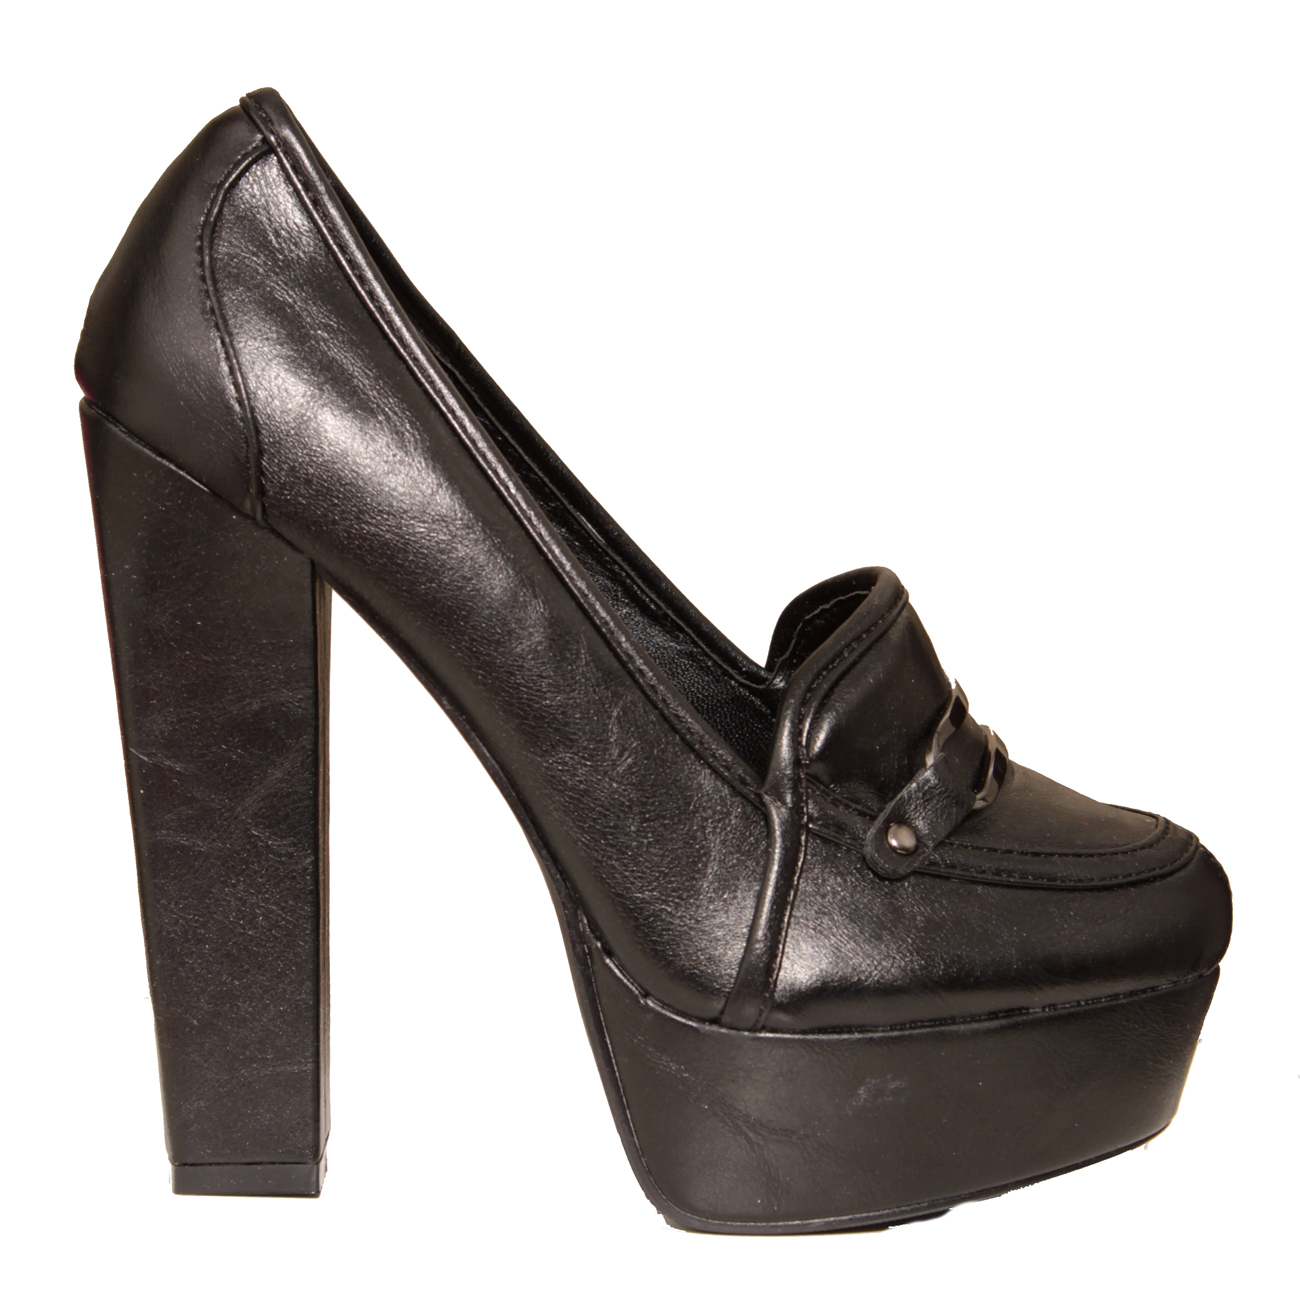 A pair of women's Gucci black patent leather horse bit high-heeled loafers, in a size AA. These designer shoes feature black patent leather uppers, almond toes, brass horse bit accents to the vamps, leather insoles and